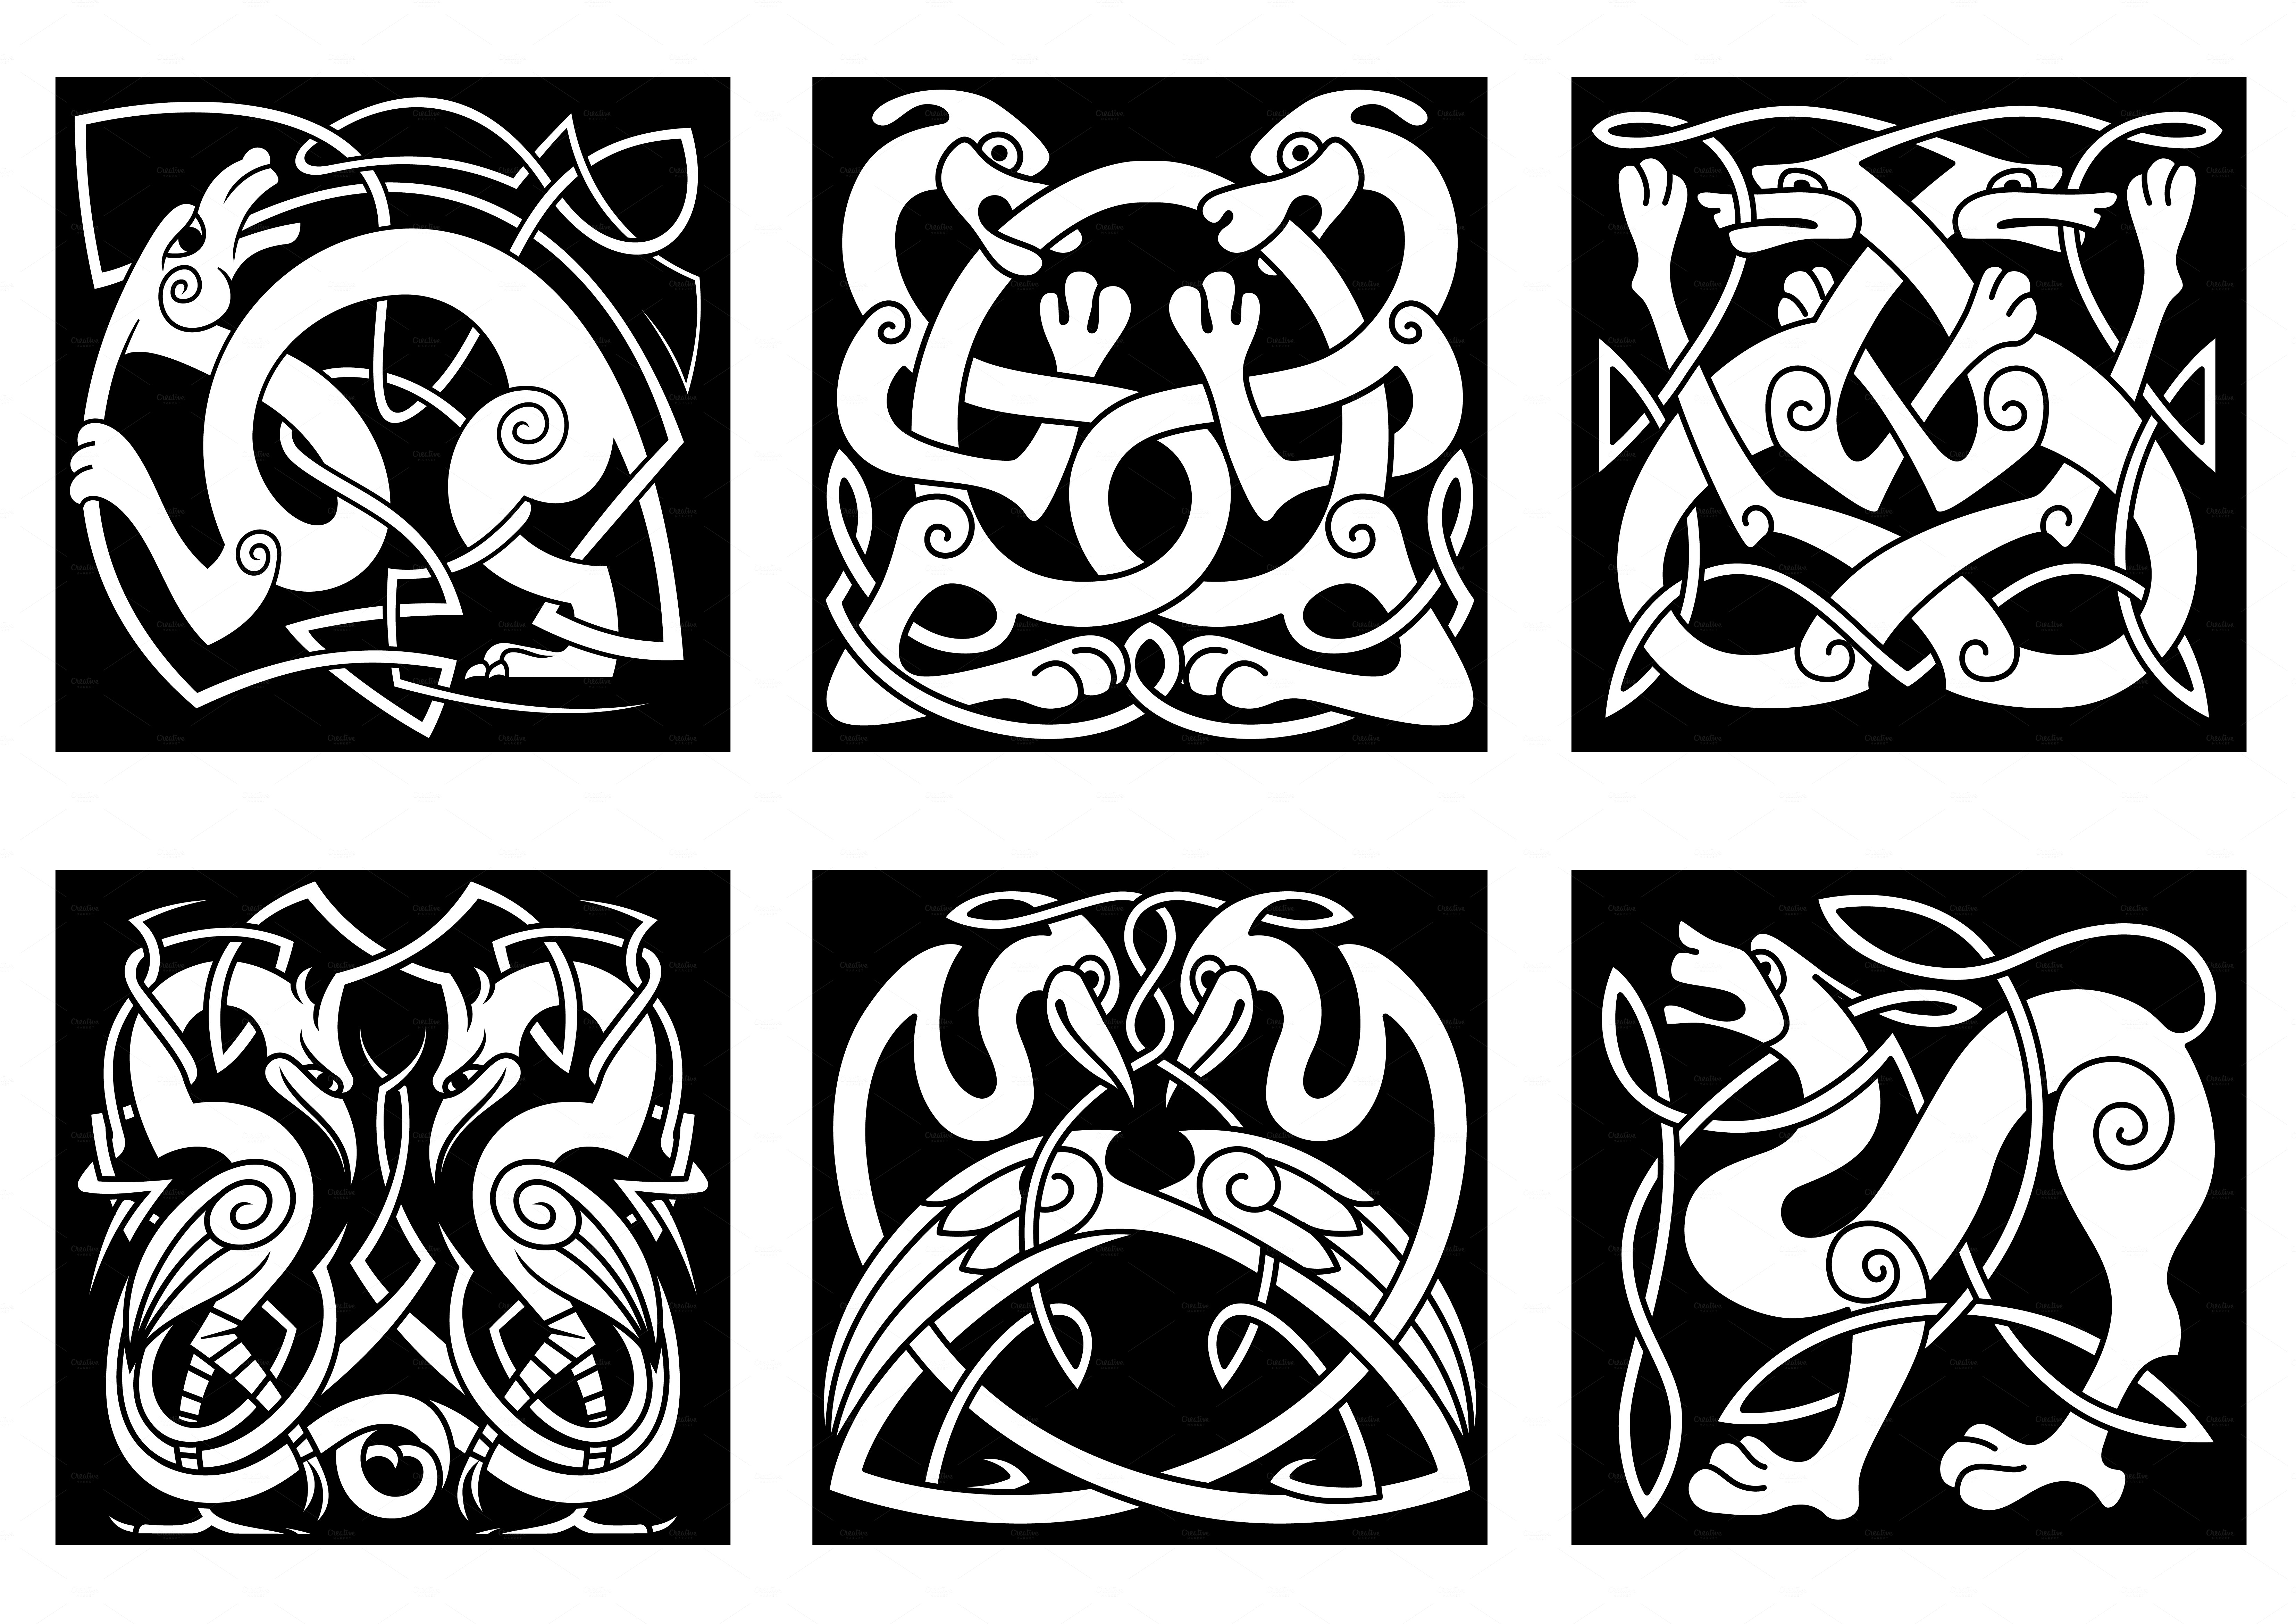 celtic patterns animal and birds in celtic style patterns on creative market celtic patterns